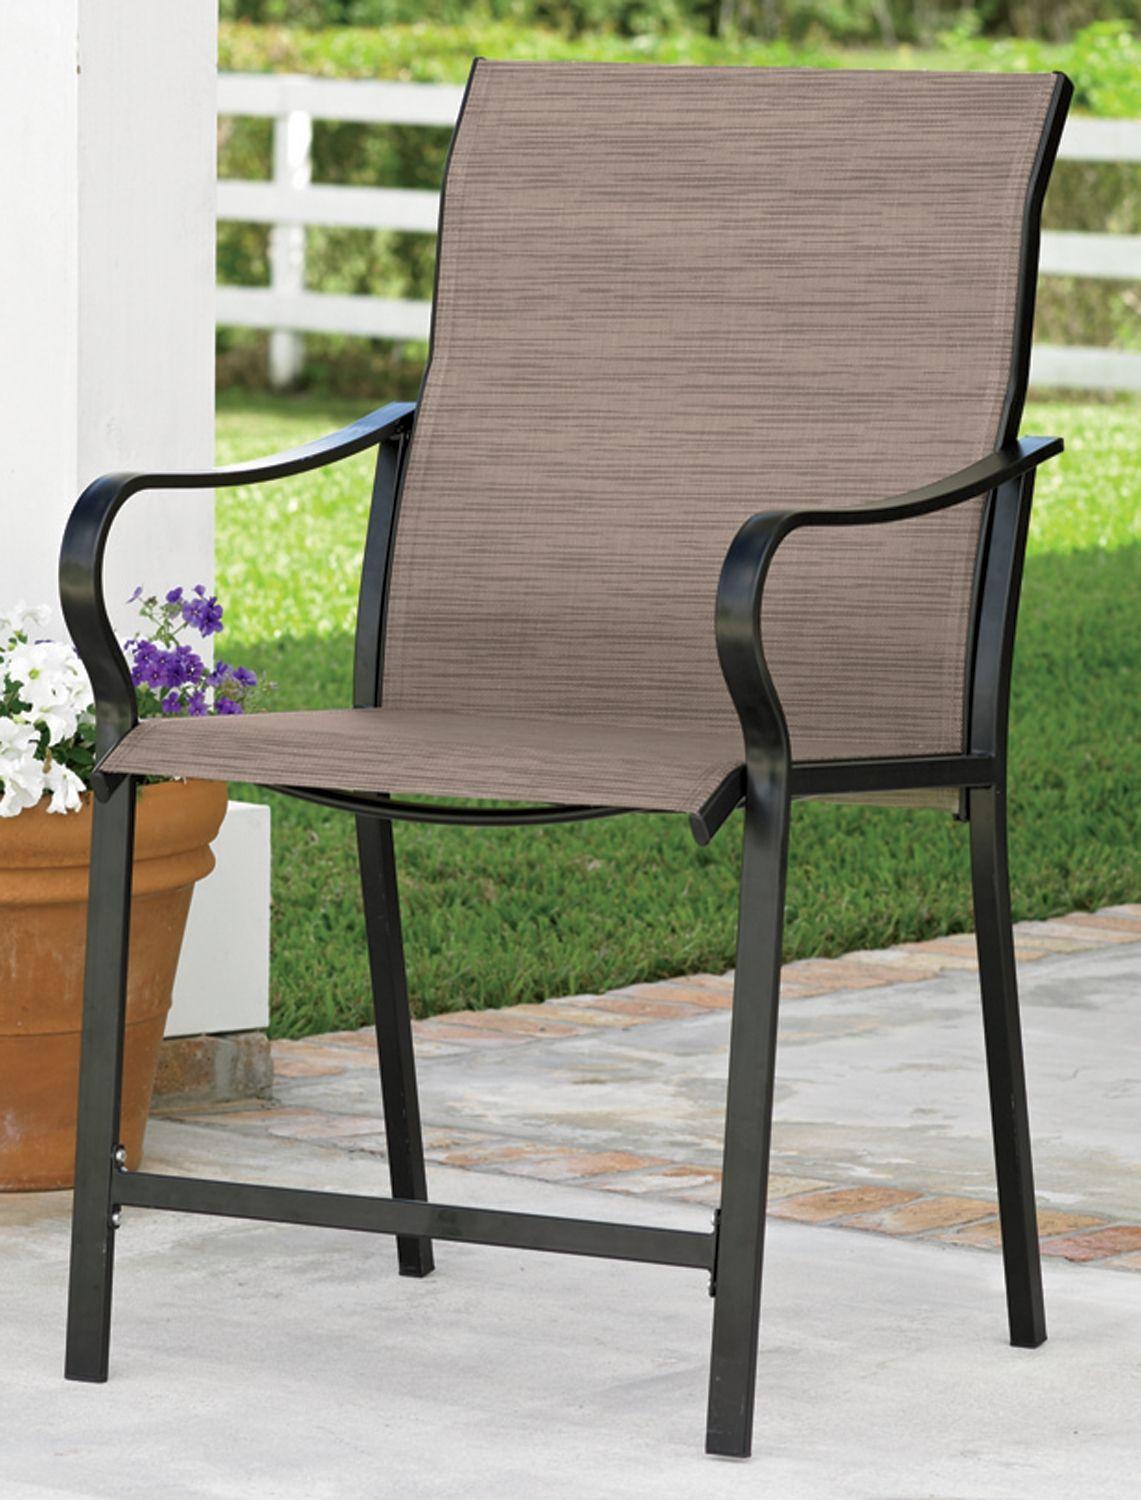 ExtraWide HighBack Patio Chair Patio chairs, Cheap